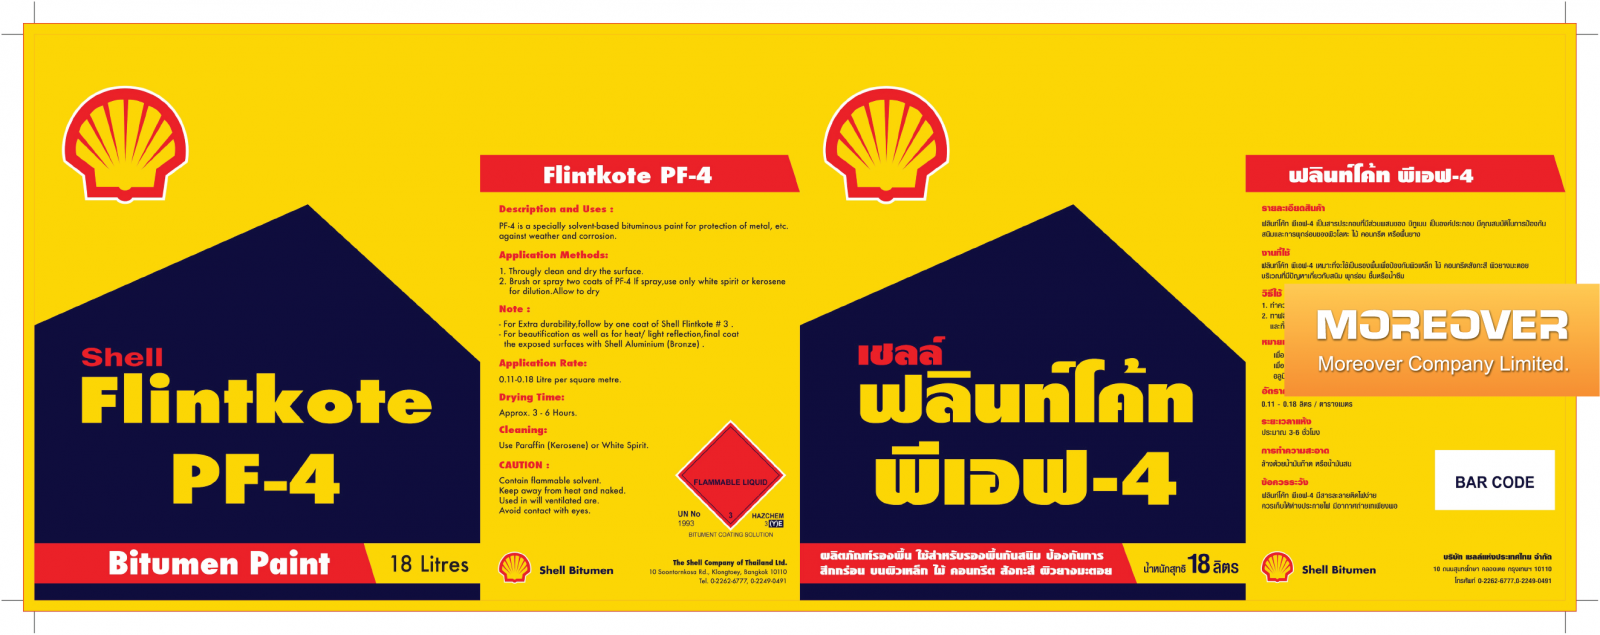 shell flintkote pf4 son chong tham do nhot thap